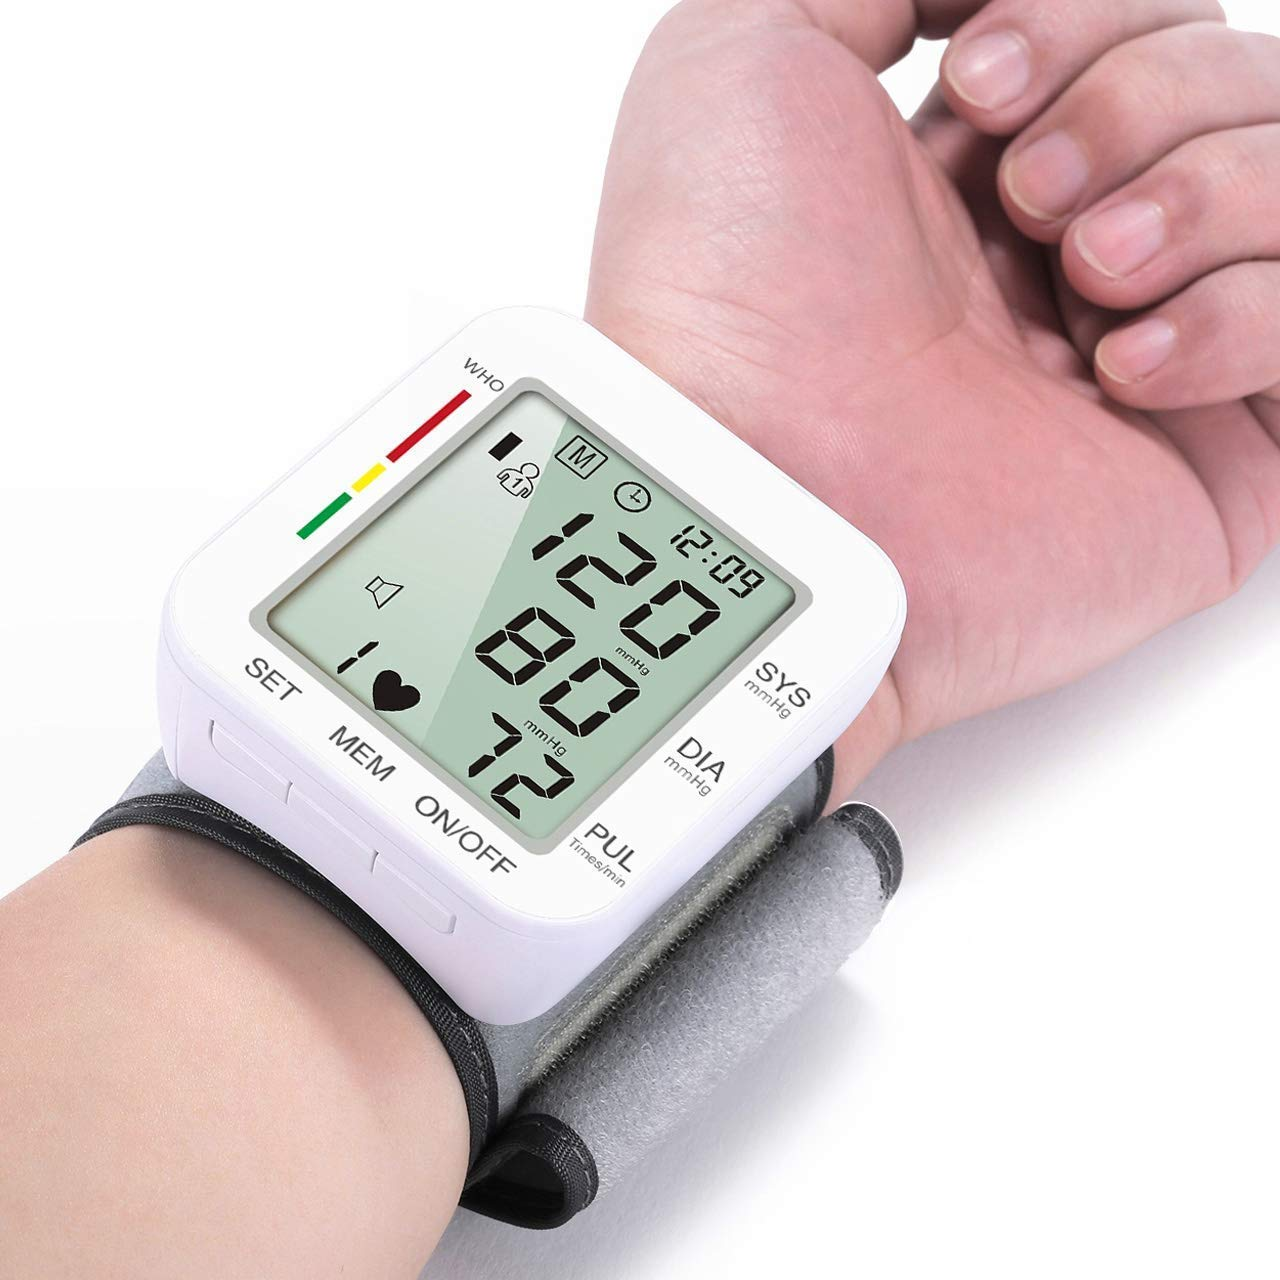 Blood Pressure Monitor Fully Automatic Accurate Wrist Blood Pressure Monitor 180 Reading Memory with Large LCD Display Adjustable Cuff for Home Use